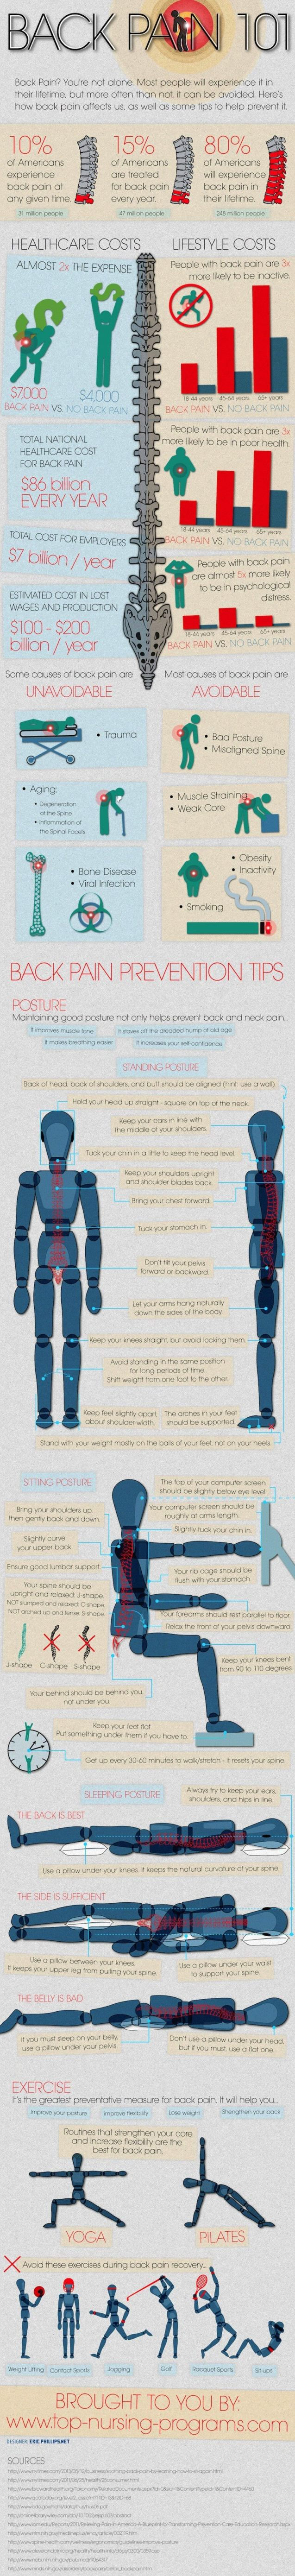 back-pain-101-infographic